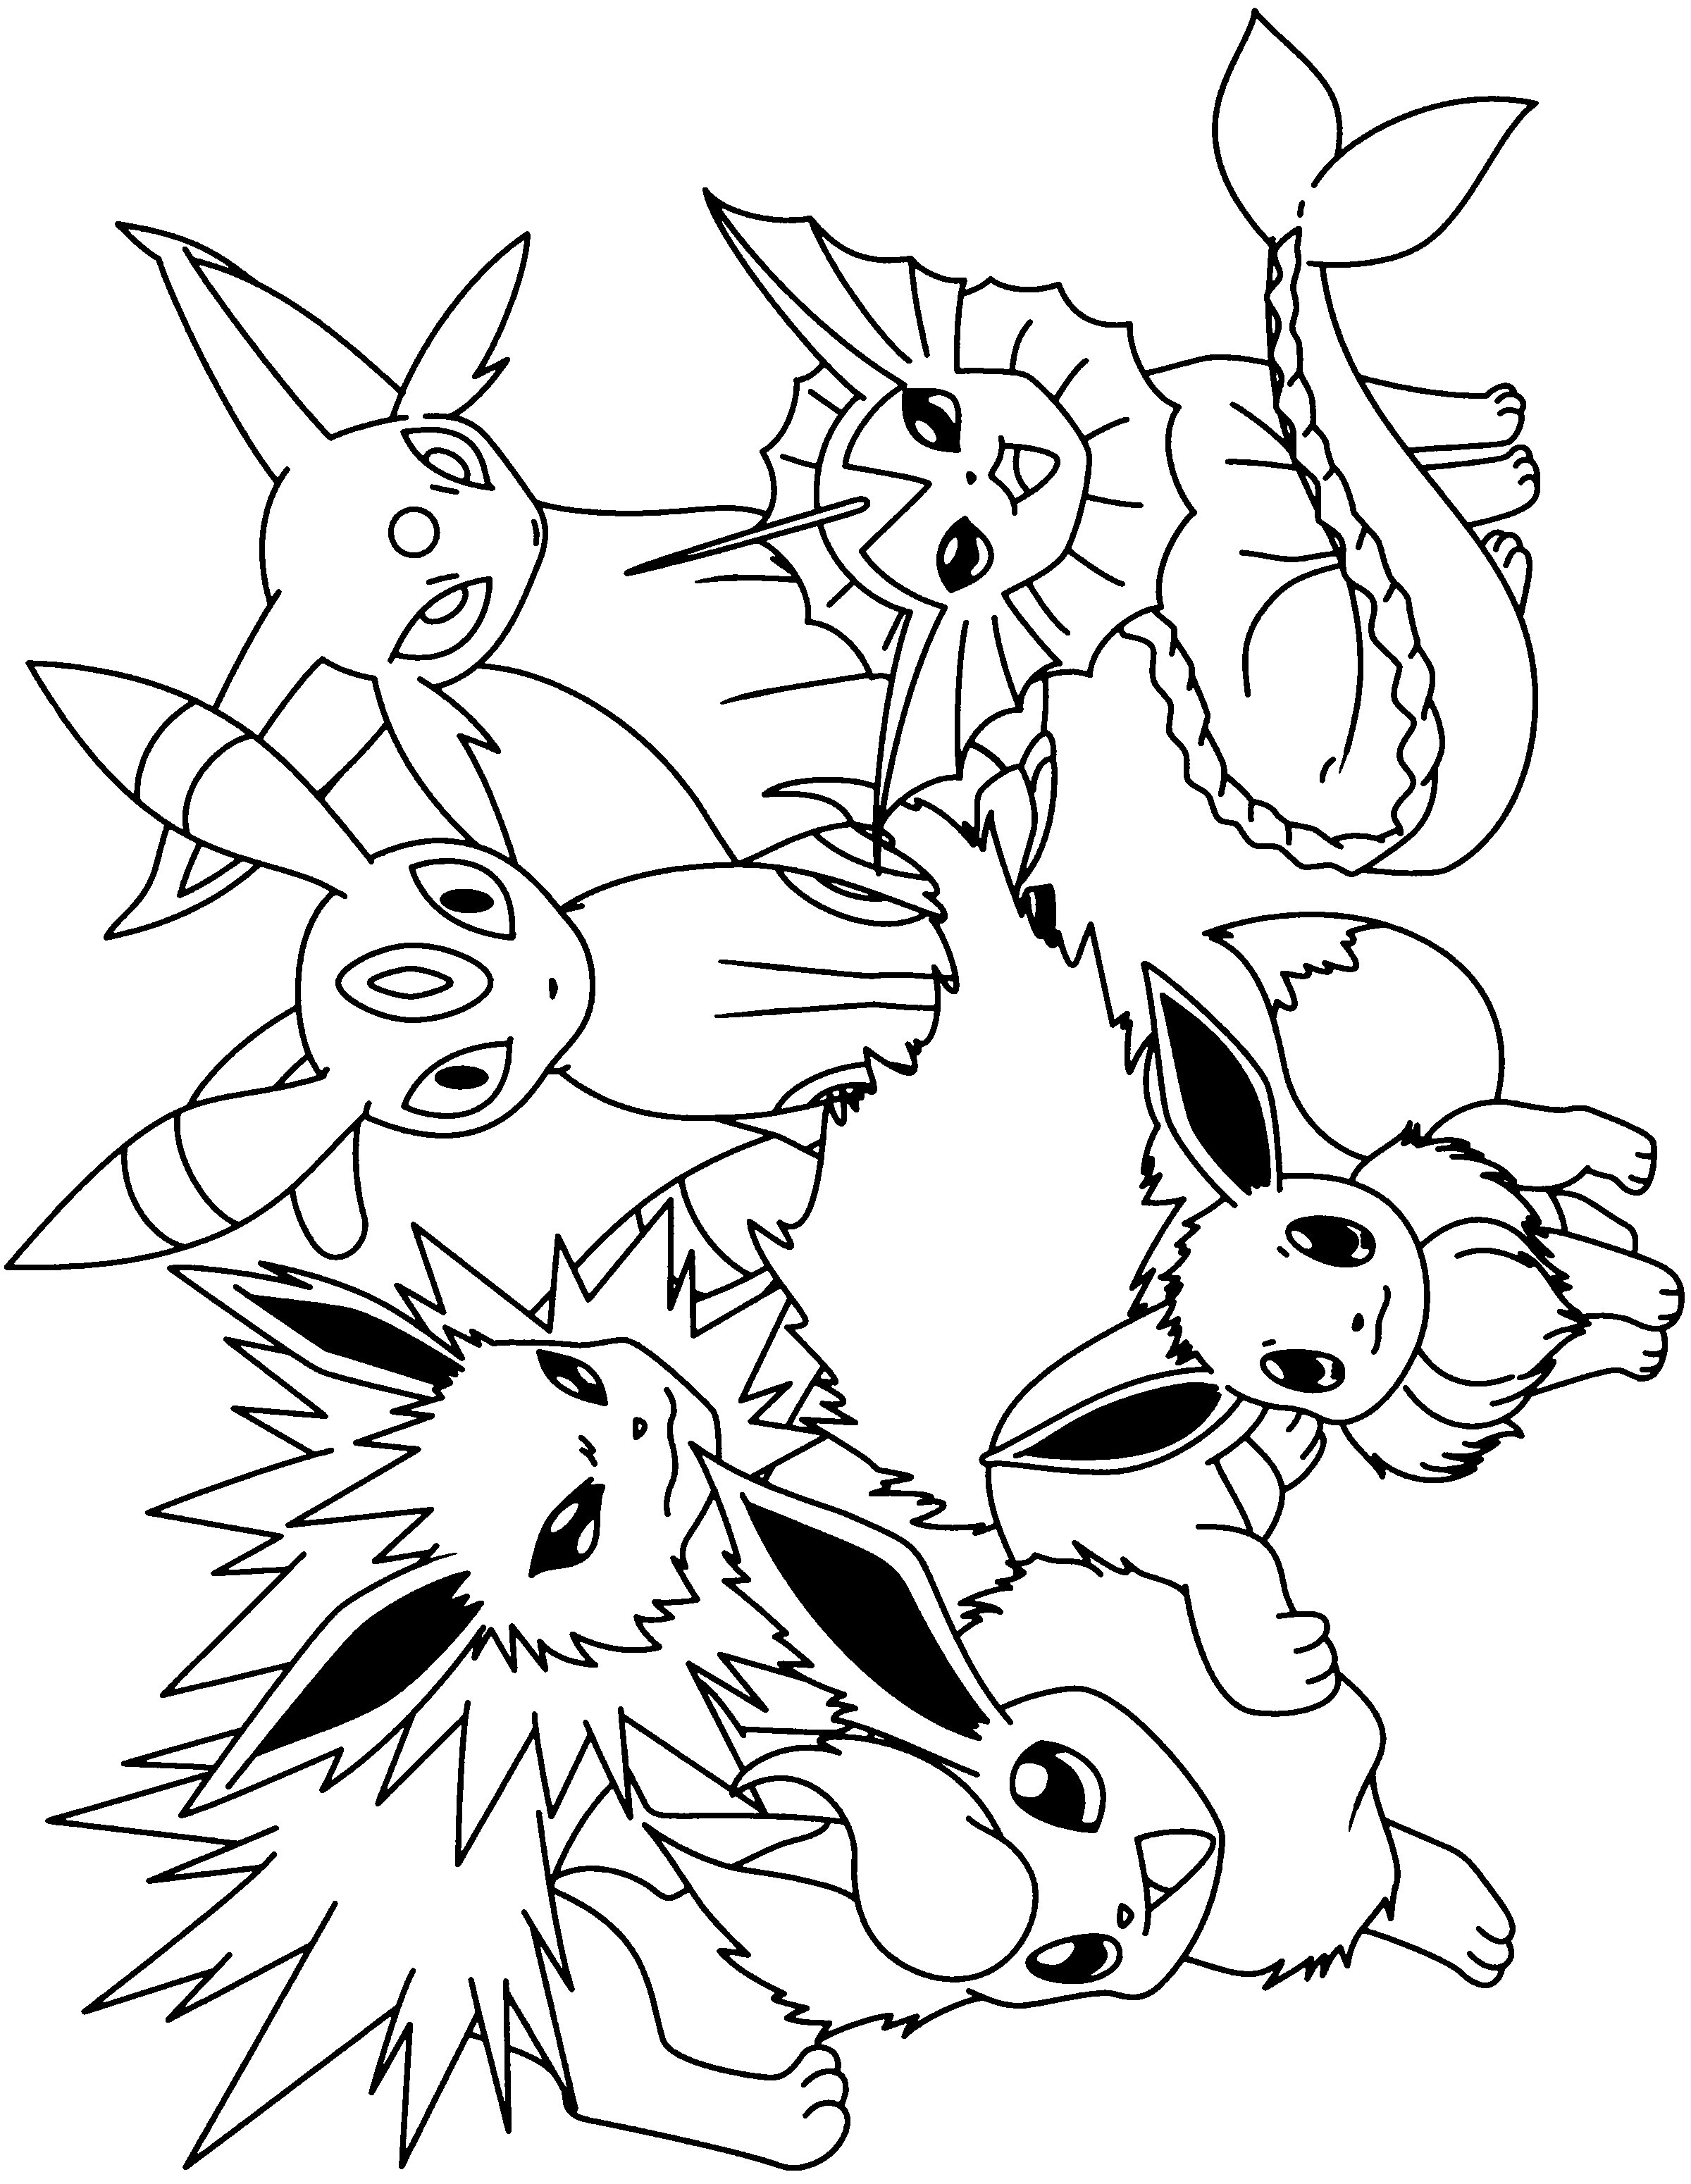 coloring pages join your favorite on an